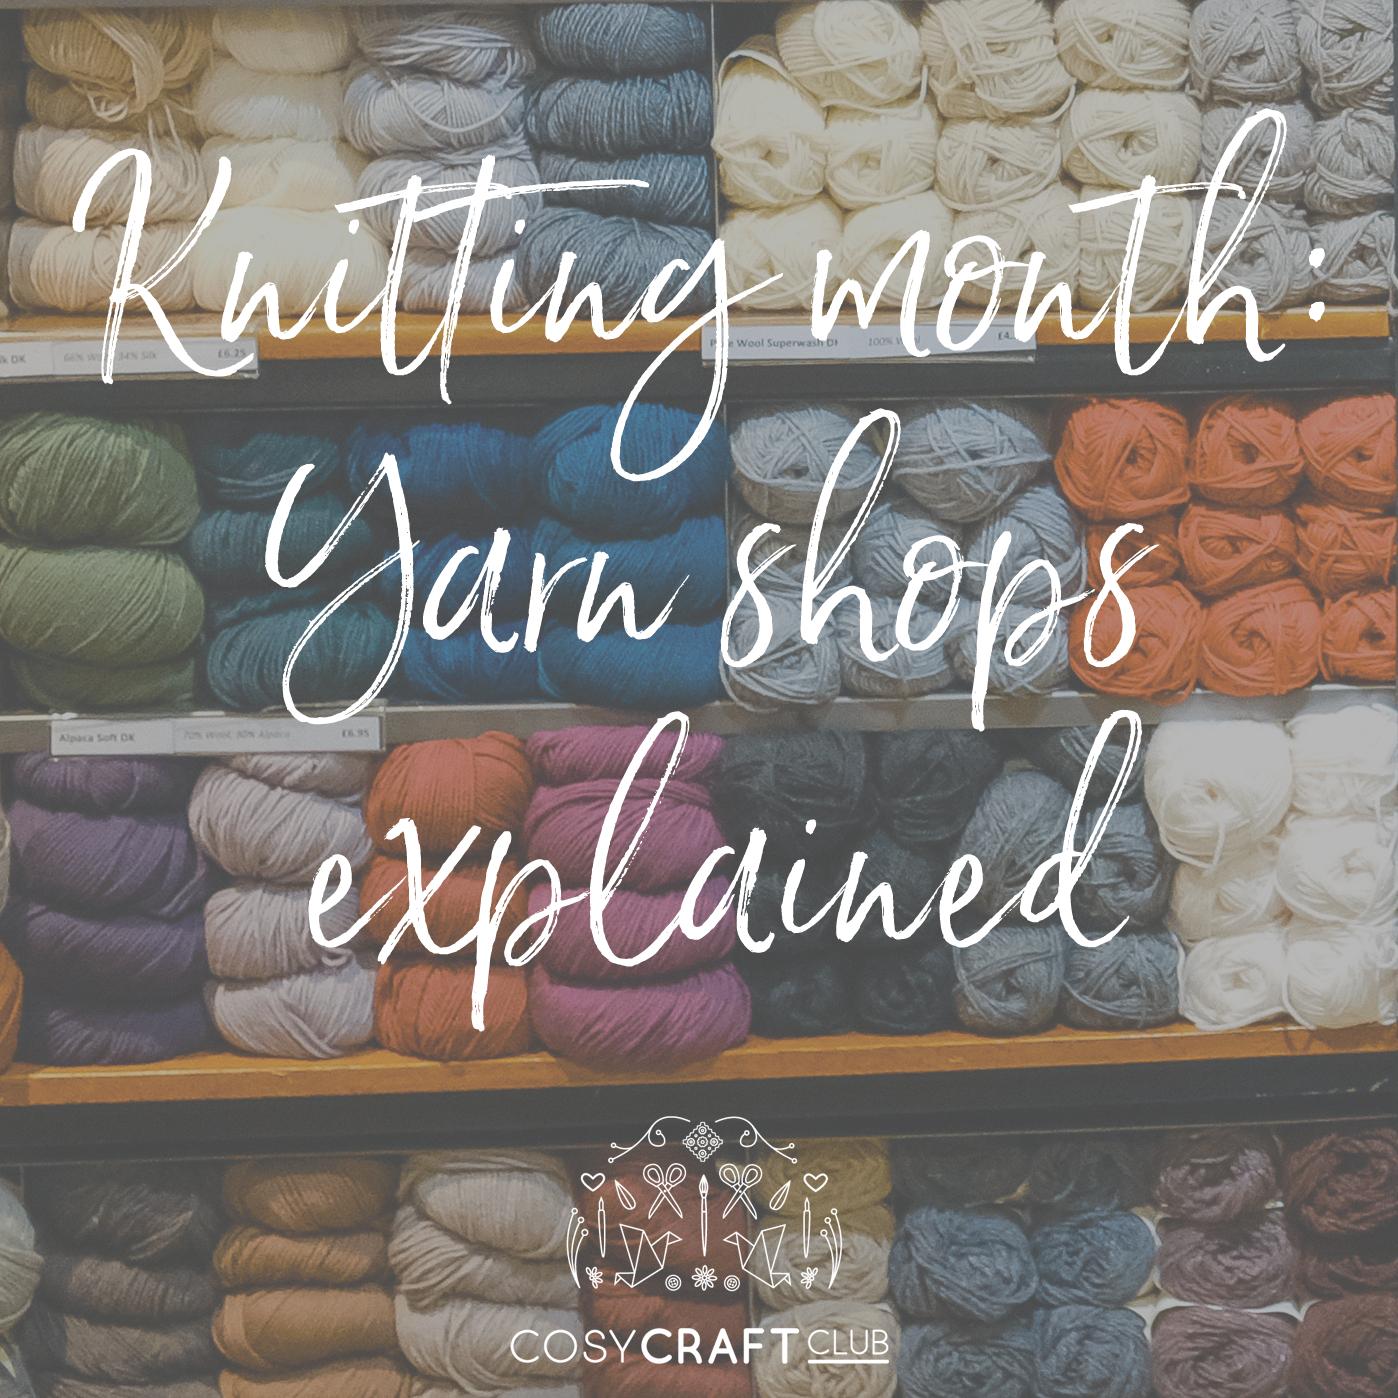 knitting month - yarn shops.png